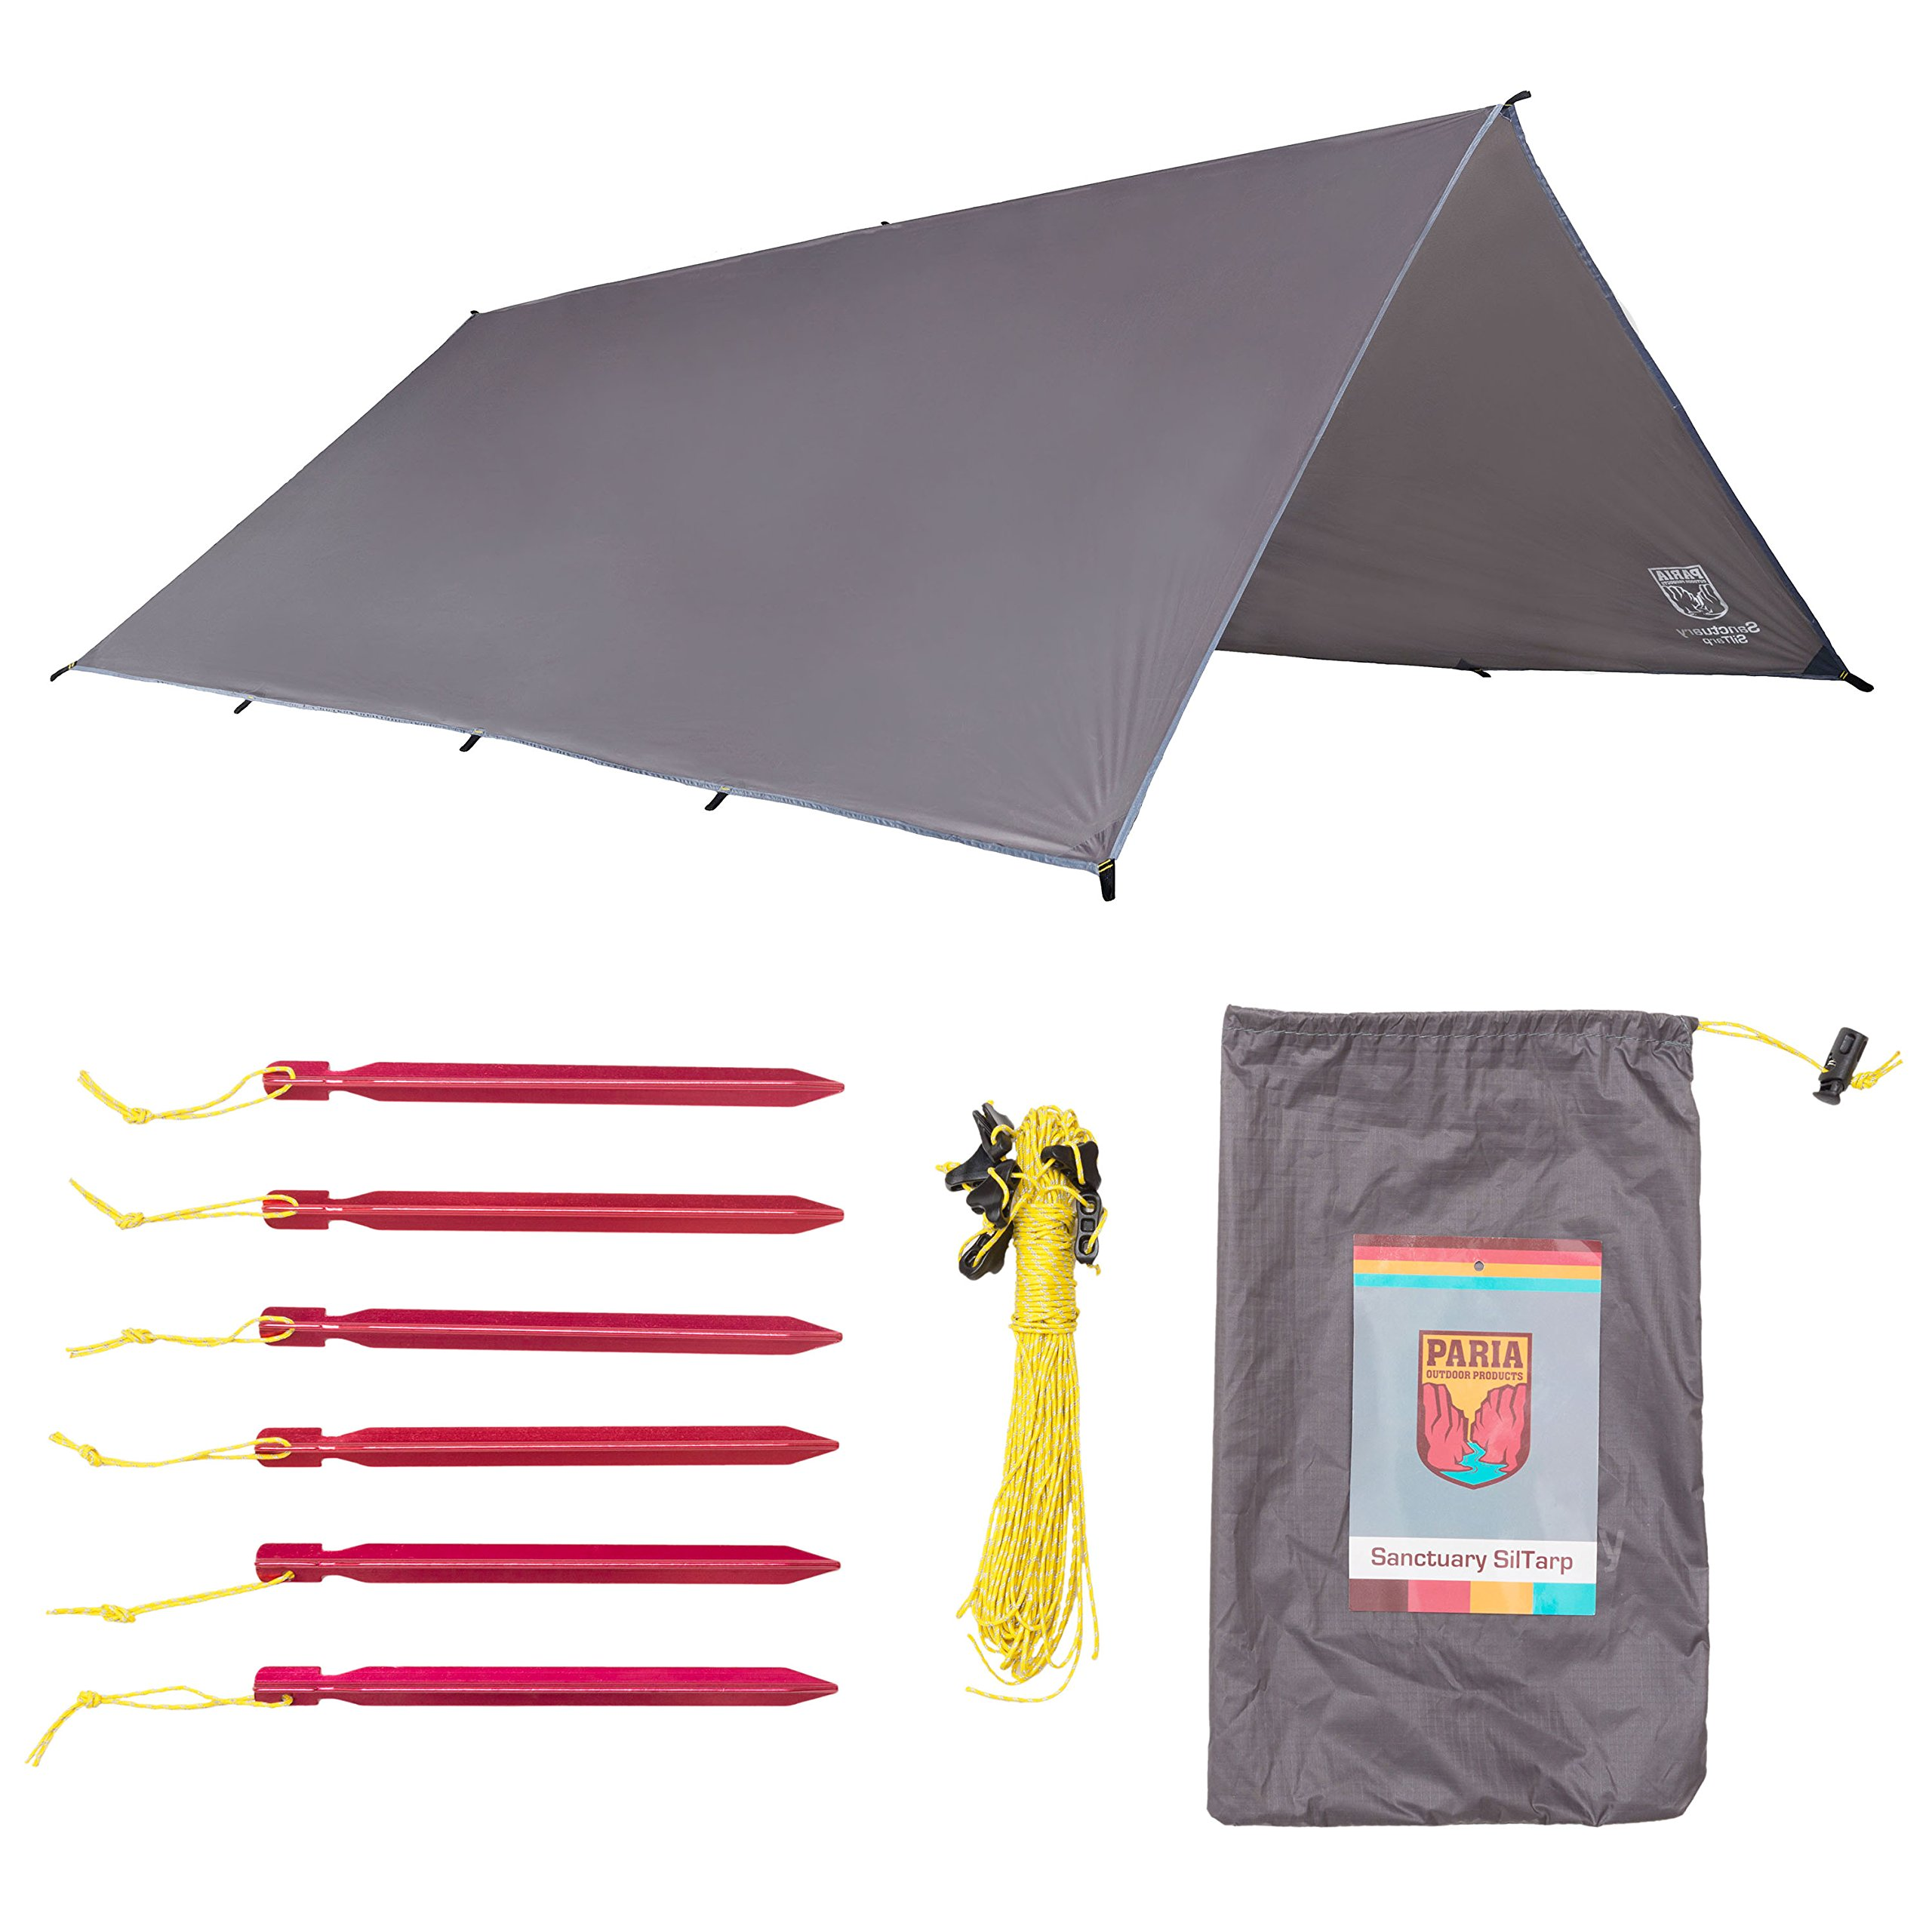 Sanctuary SilTarp - Ultralight and Waterproof Ripstop Silnylon Rain Shelter Tarp, Guy Line and Stake Kit - Perfect for Hammocks, Camping and Backpacking (10 feet by 8 feet - Flat Cut) by Paria Outdoor Products